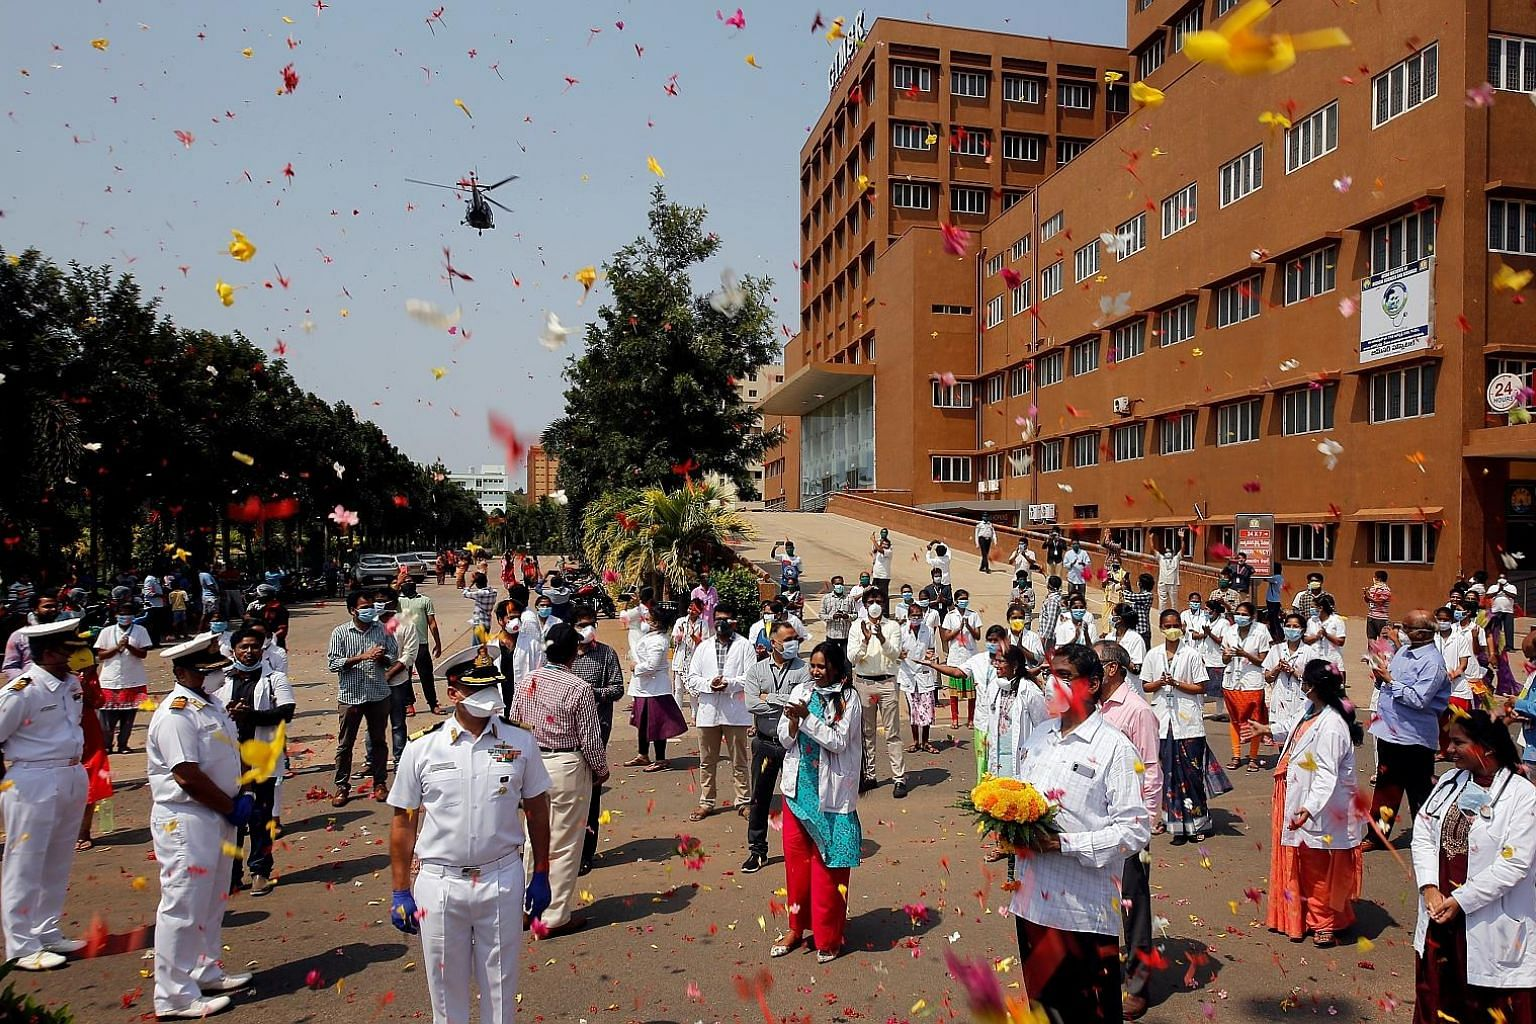 An Indian Navy Chetak helicopter showering flower petals yesterday over the premises of a hospital in Visakhapatnam as part of an event showing gratitude to the front-line warriors fighting the coronavirus outbreak in the country.